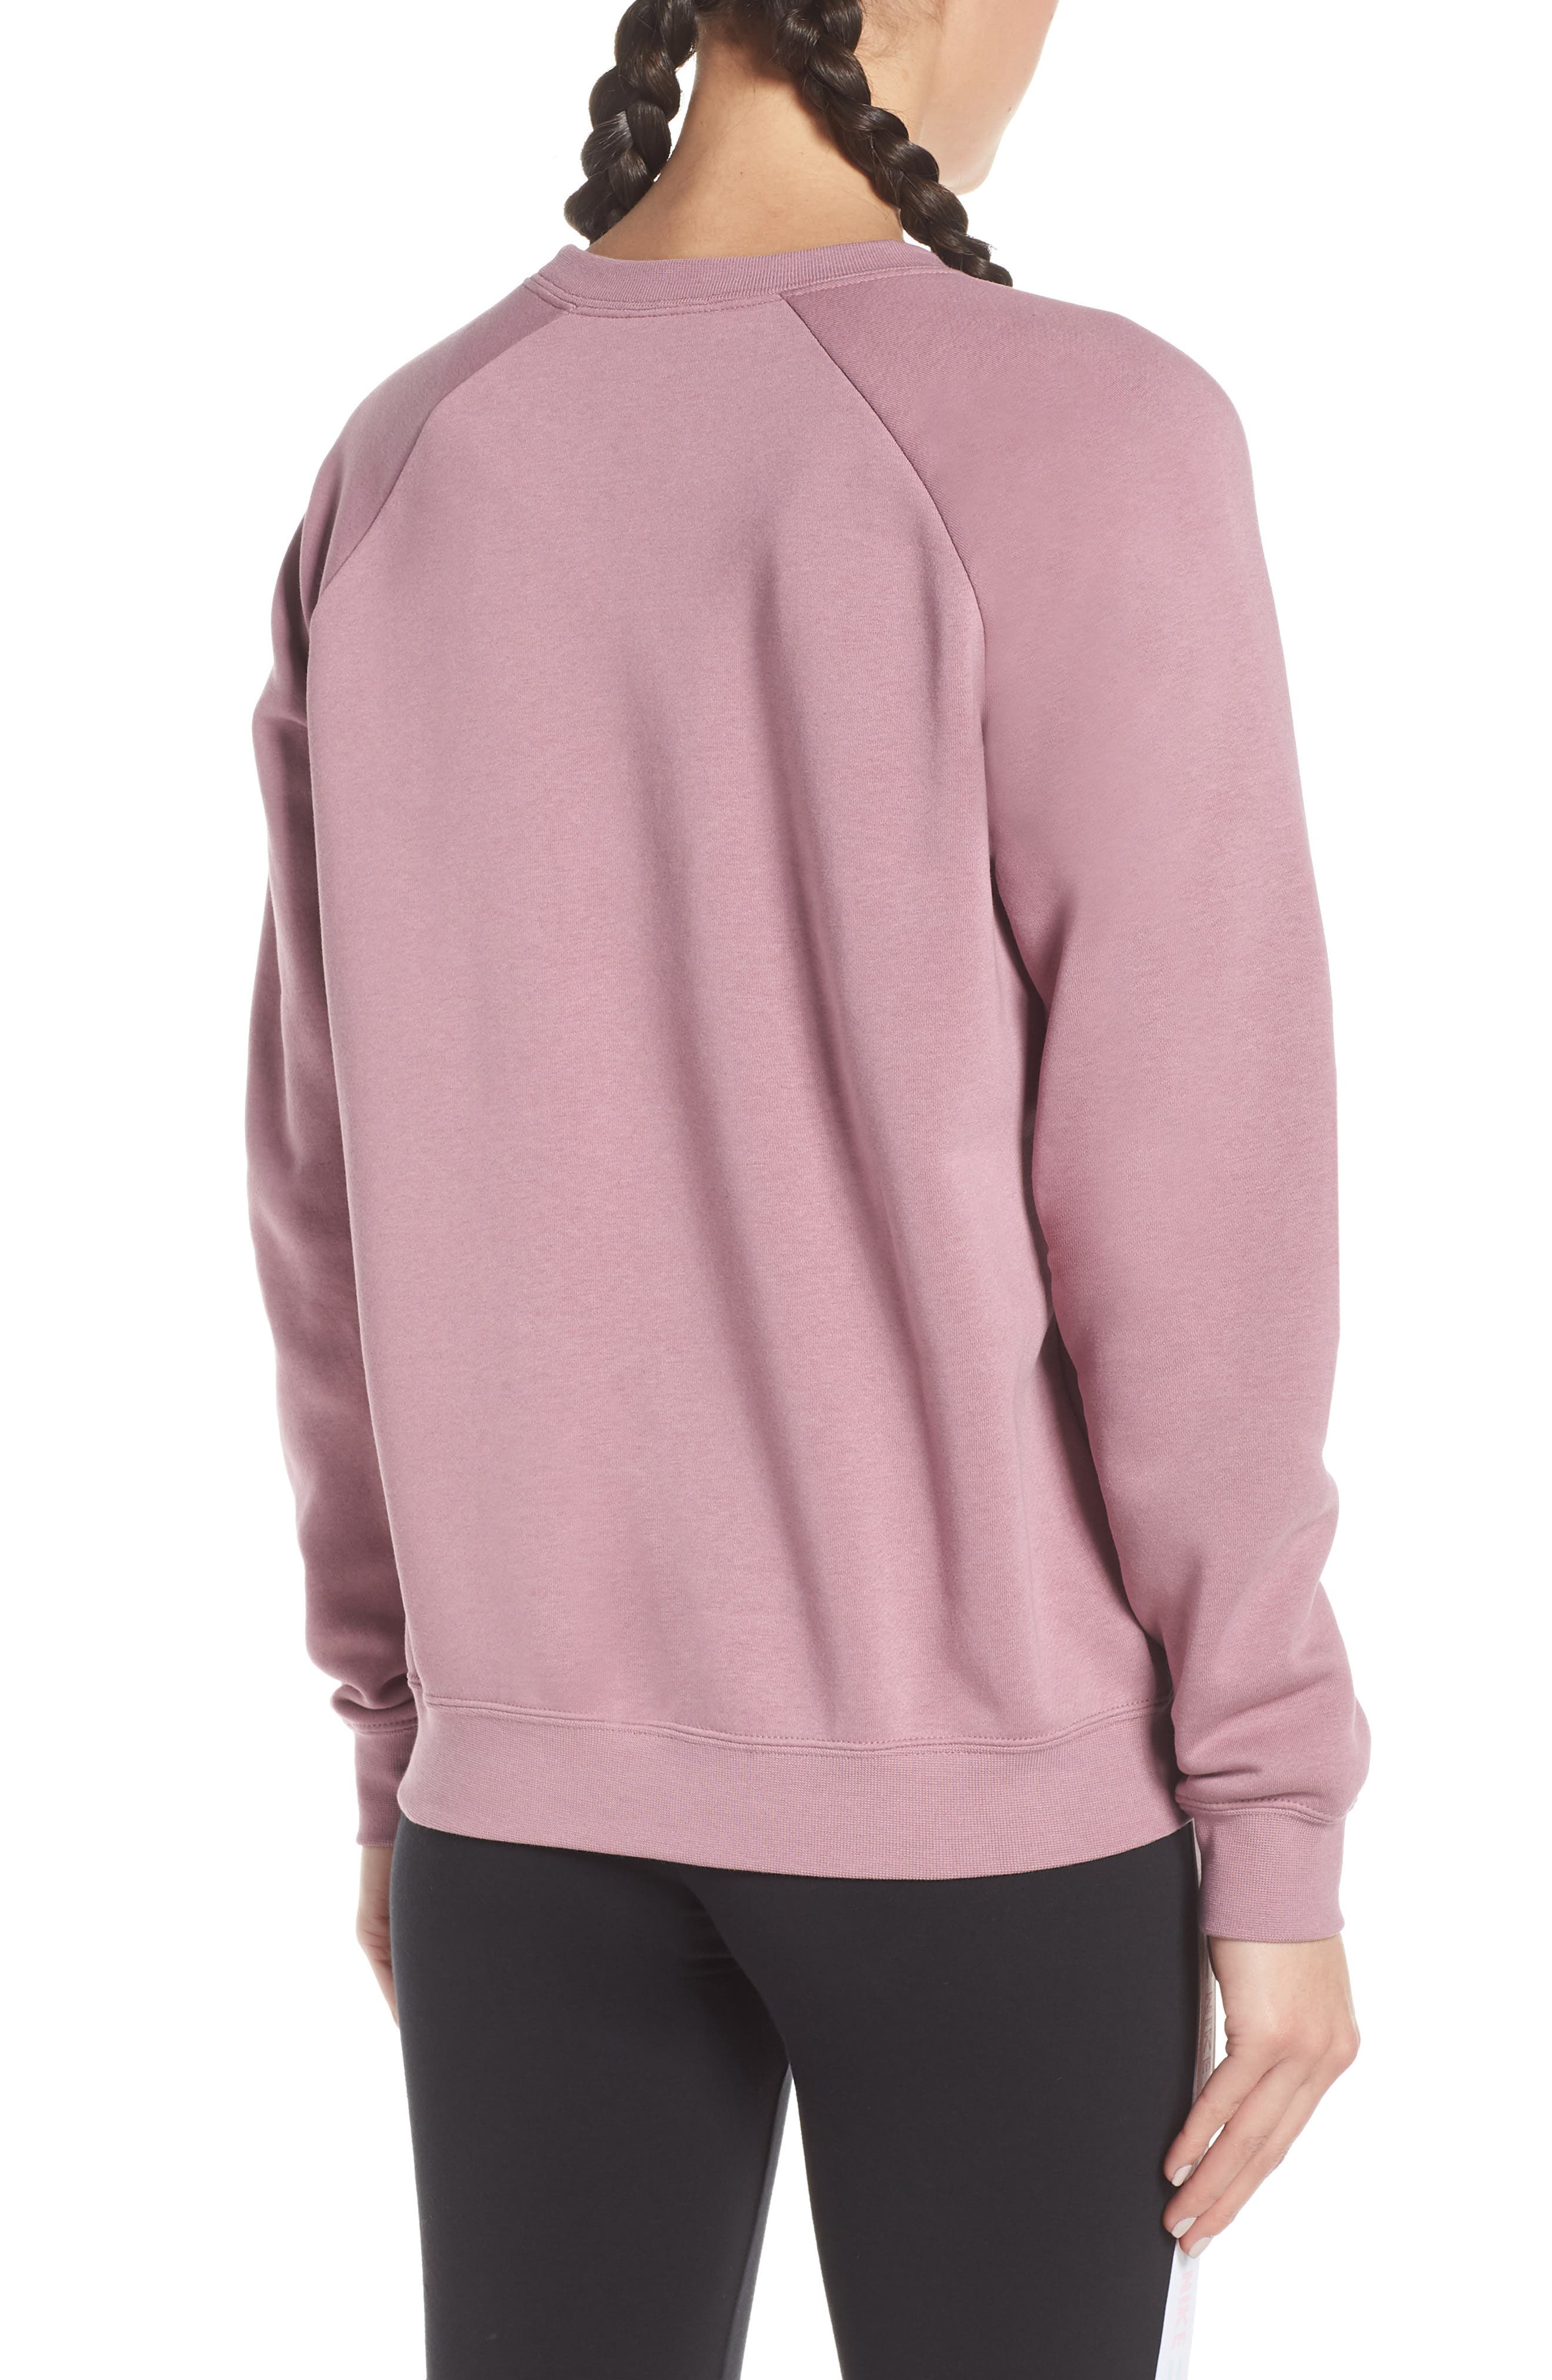 NIKE, NSW Rally Sweatshirt, Alternate thumbnail 2, color, PLUM DUST/ WHITE